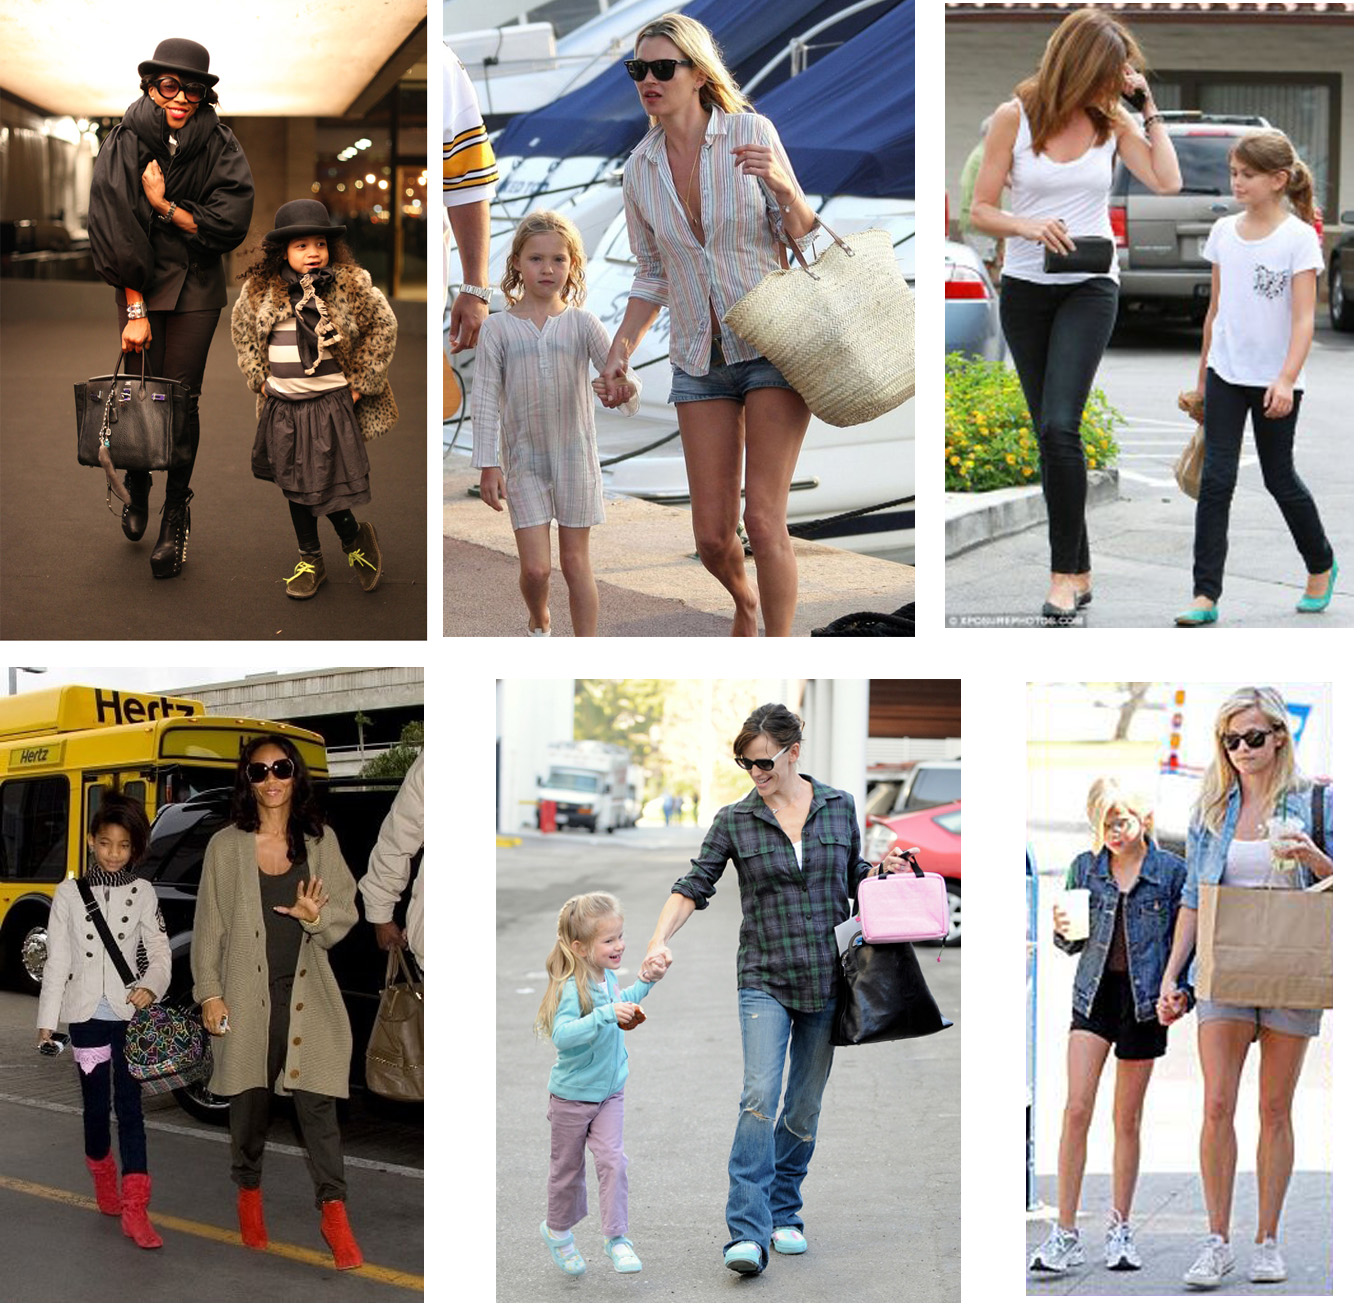 http://2.bp.blogspot.com/-53aHxgWdBWw/TcVYw0RXM3I/AAAAAAAAAtw/S-d-hYftsqM/s1600/mother+daughter+celebrity++kid+matching.jpg